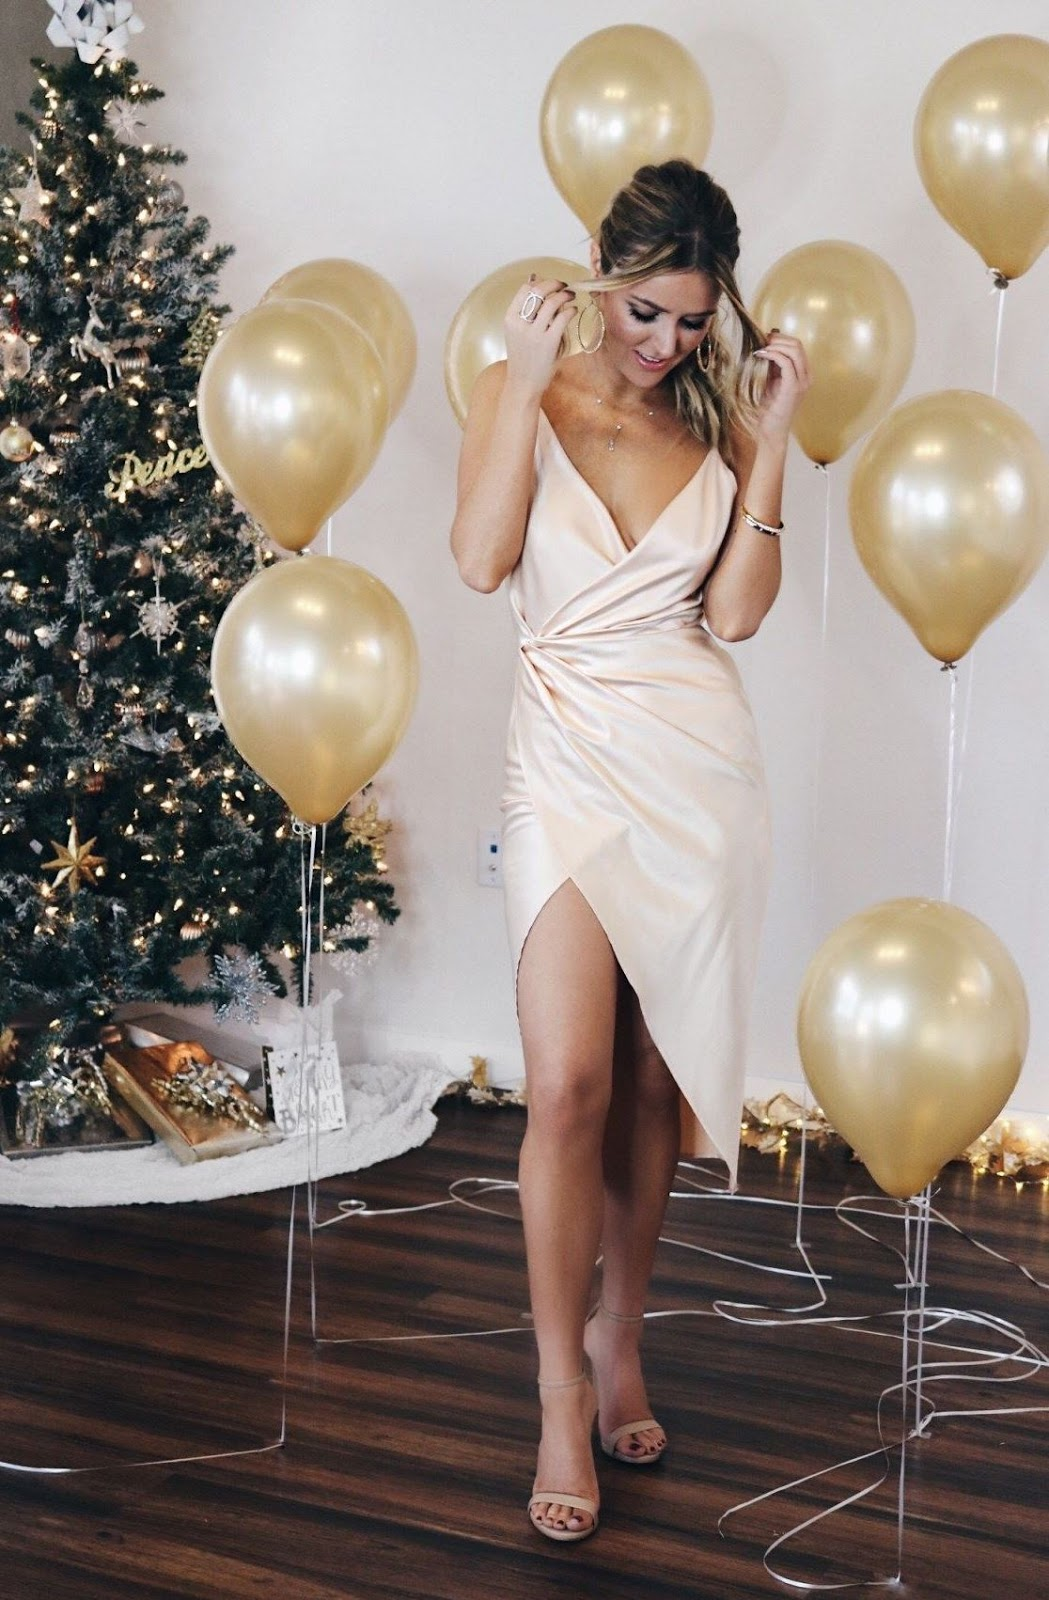 best festive outfit idea / silk dress and heels